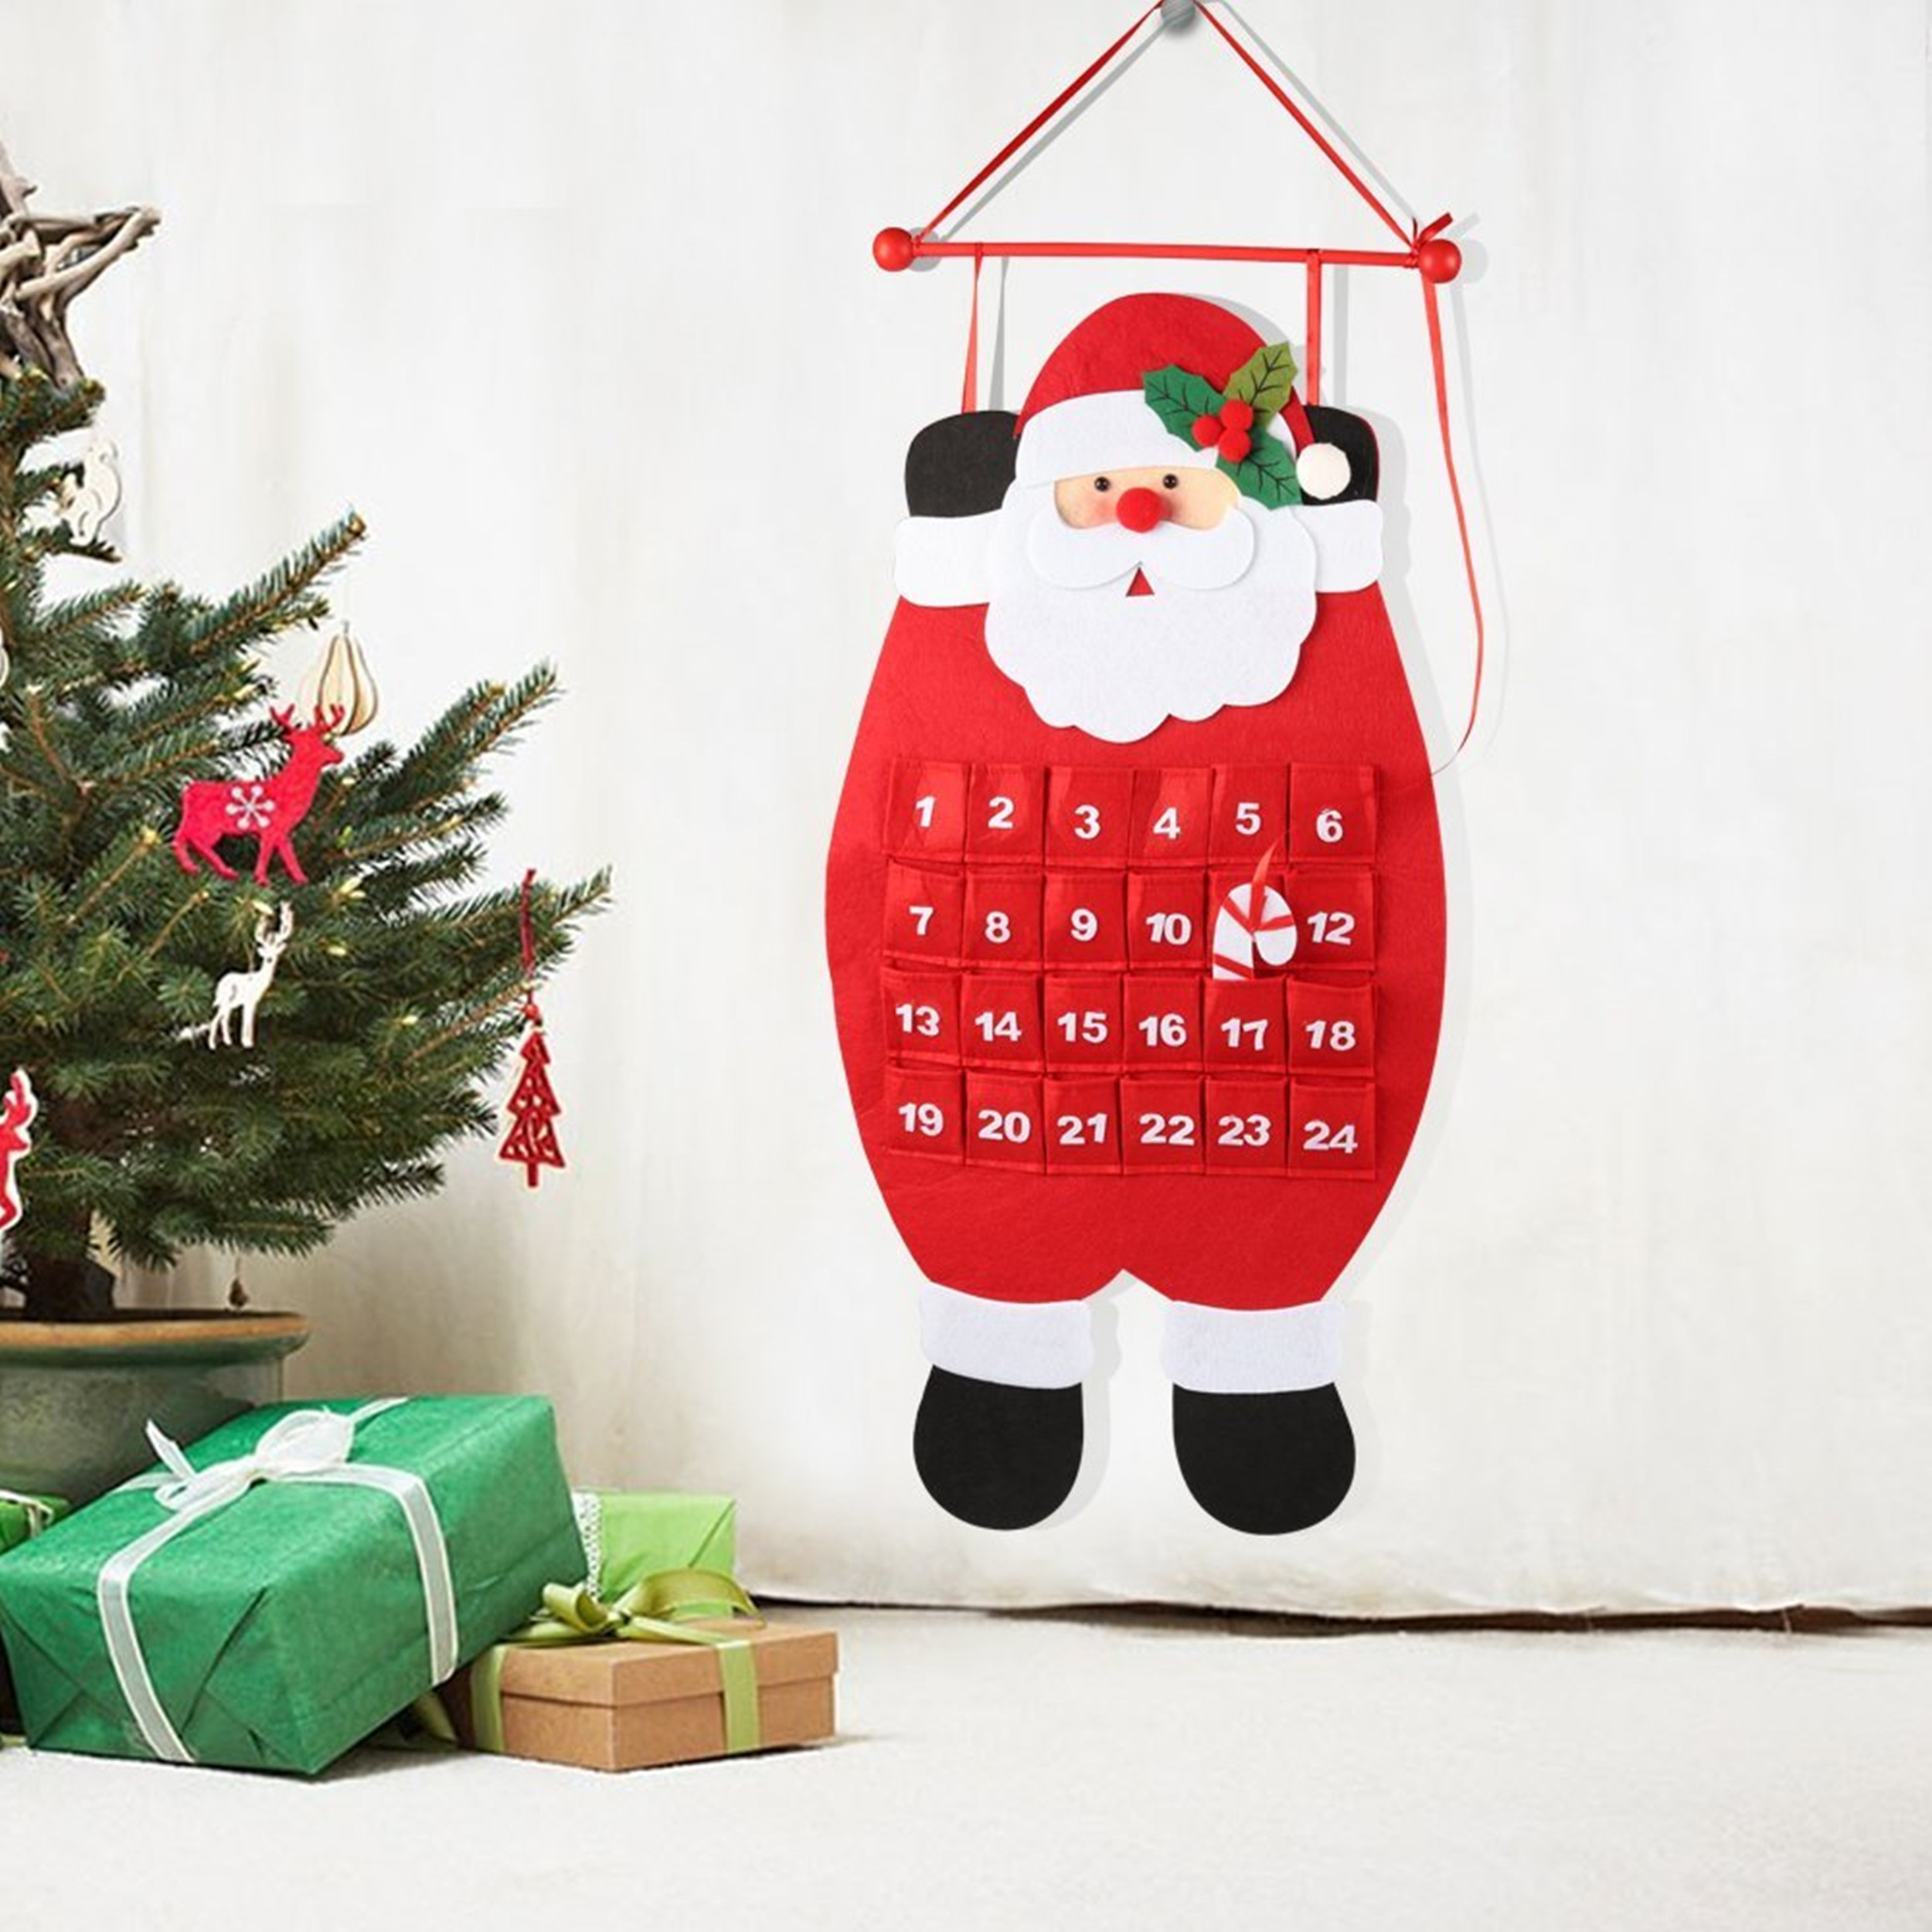 Countdown to Christmas Advent Calendar 3D Santa Felt Advent Calendar